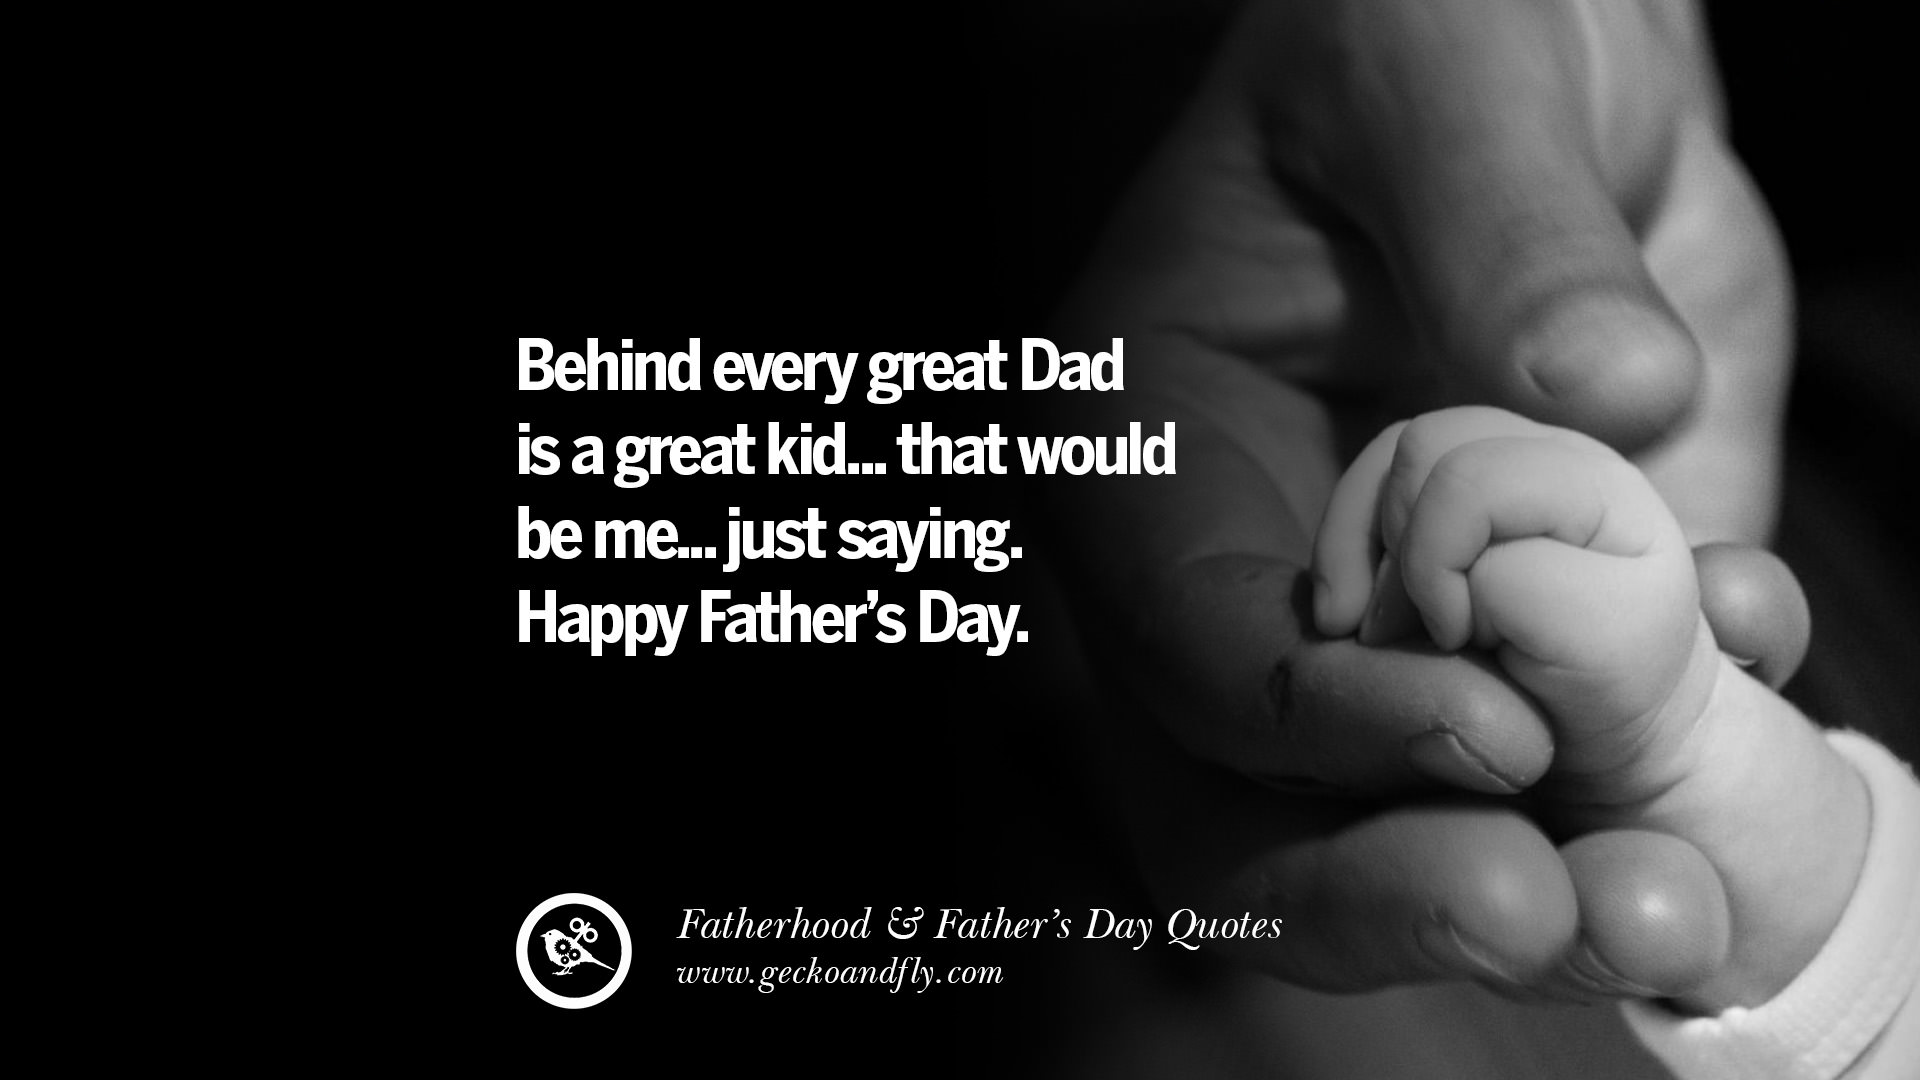 50 Inspiring And Funny Father S Day Quotes On Fatherhood